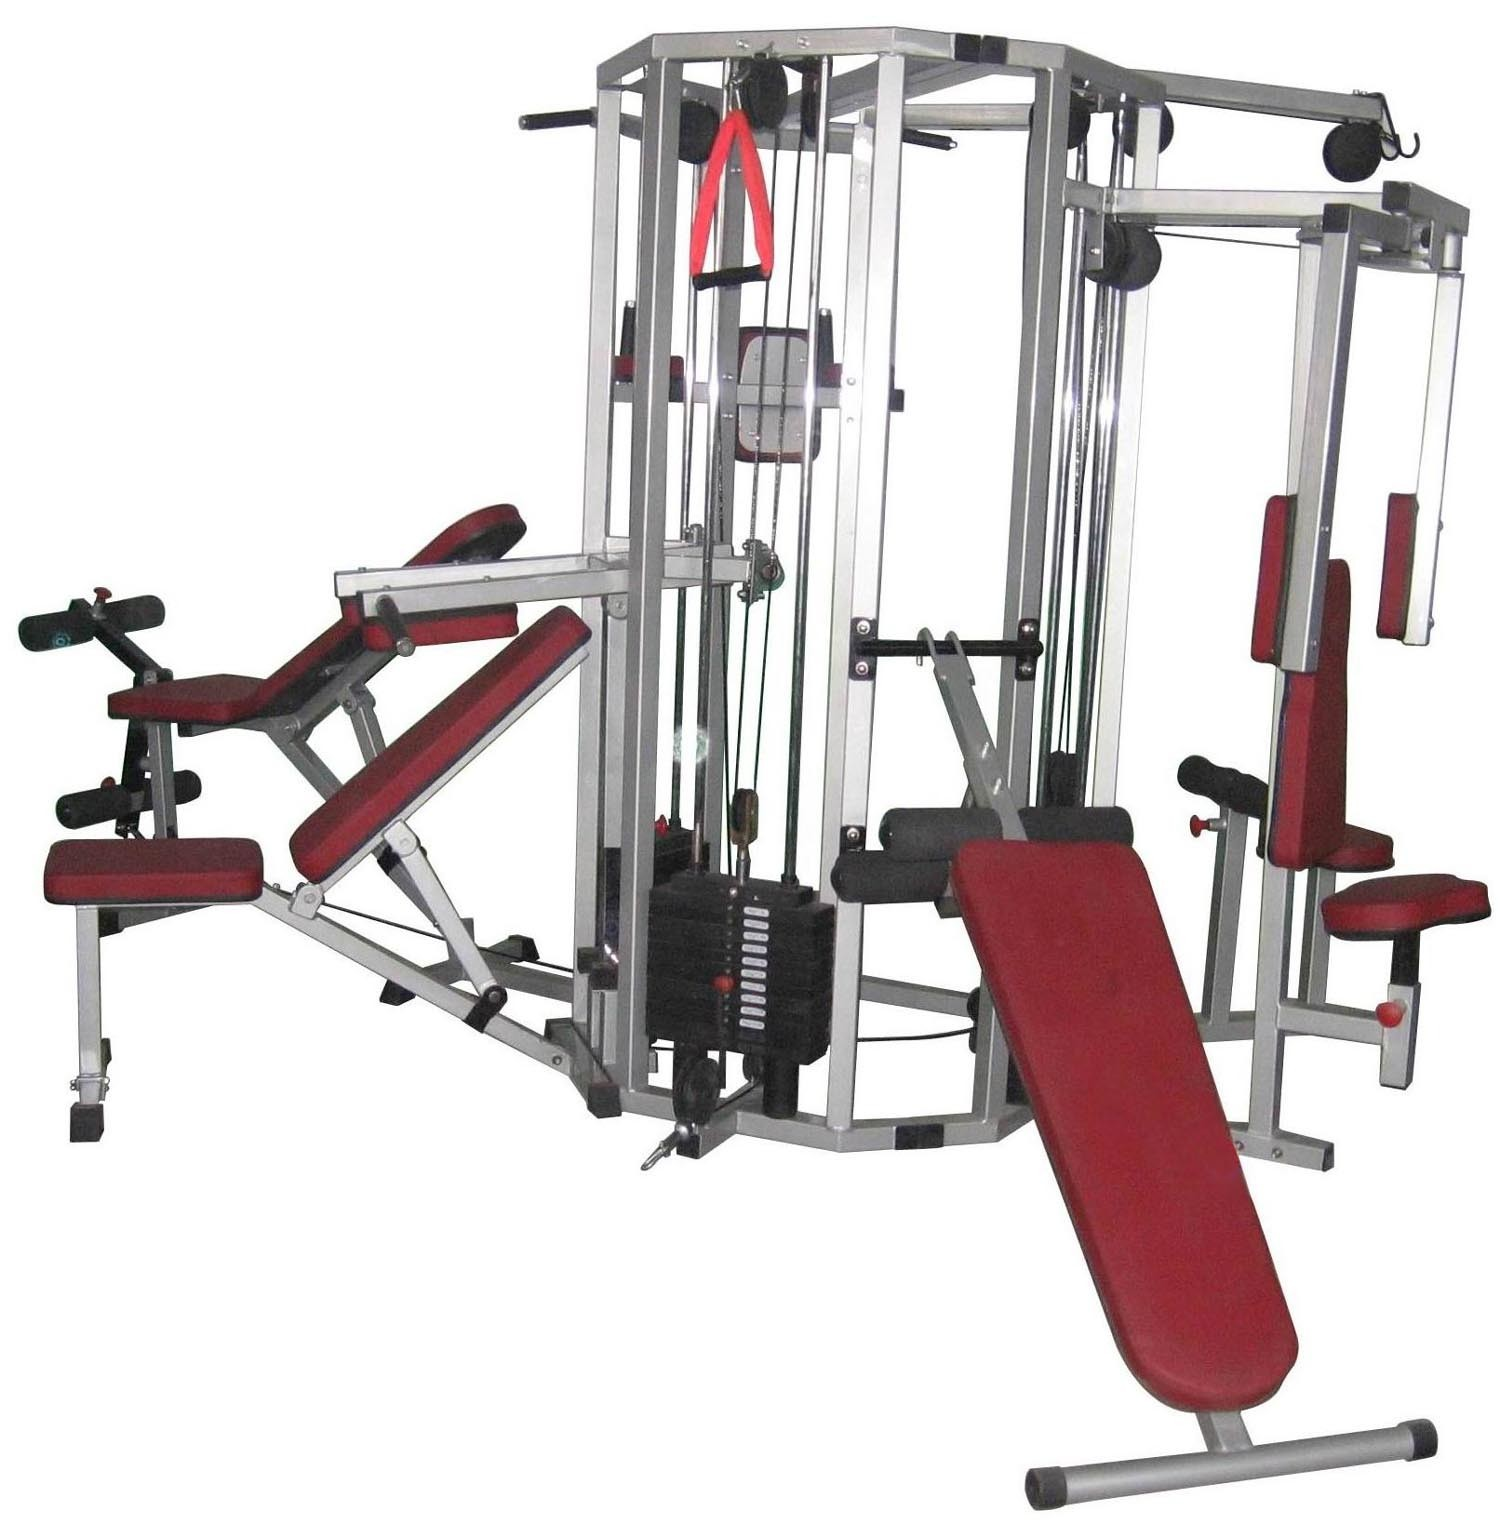 Exercise fitness home gym equipment - Images of home gyms ...